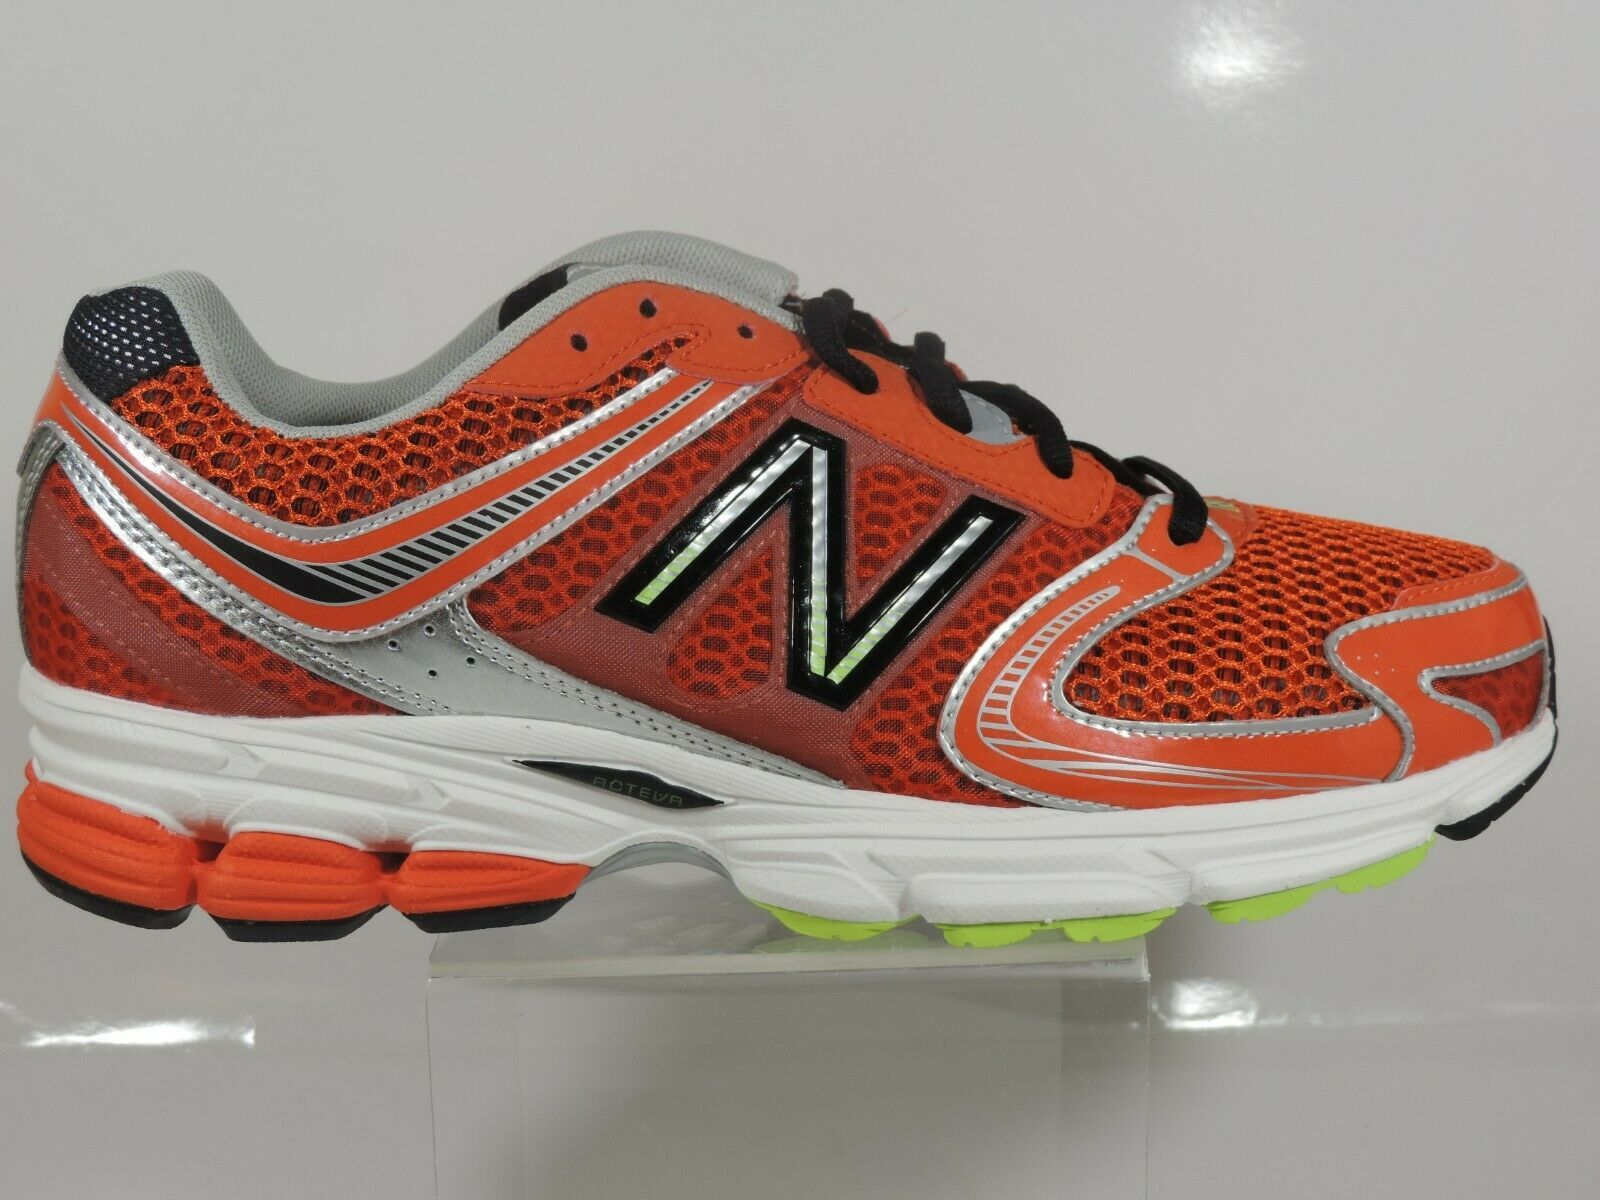 New Balance Men's Shoes M770CT3 Athletic Running Sneakers Red Black Mesh